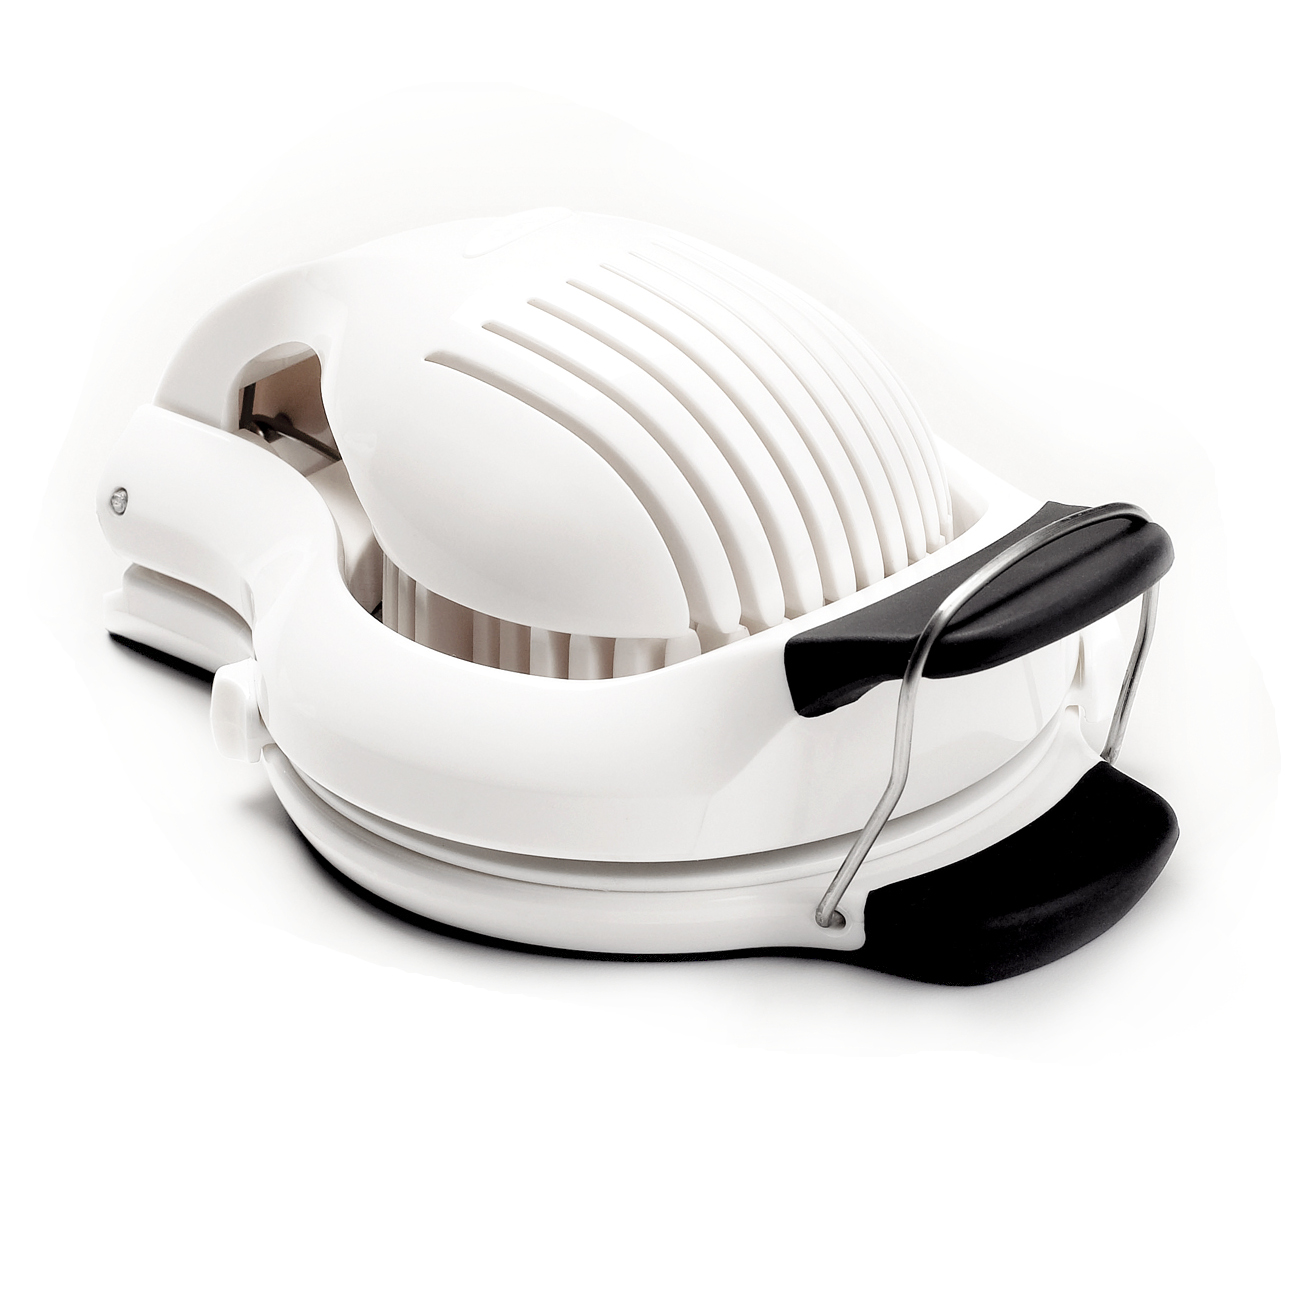 OXO Good Grips White Egg Slicer and Chopper